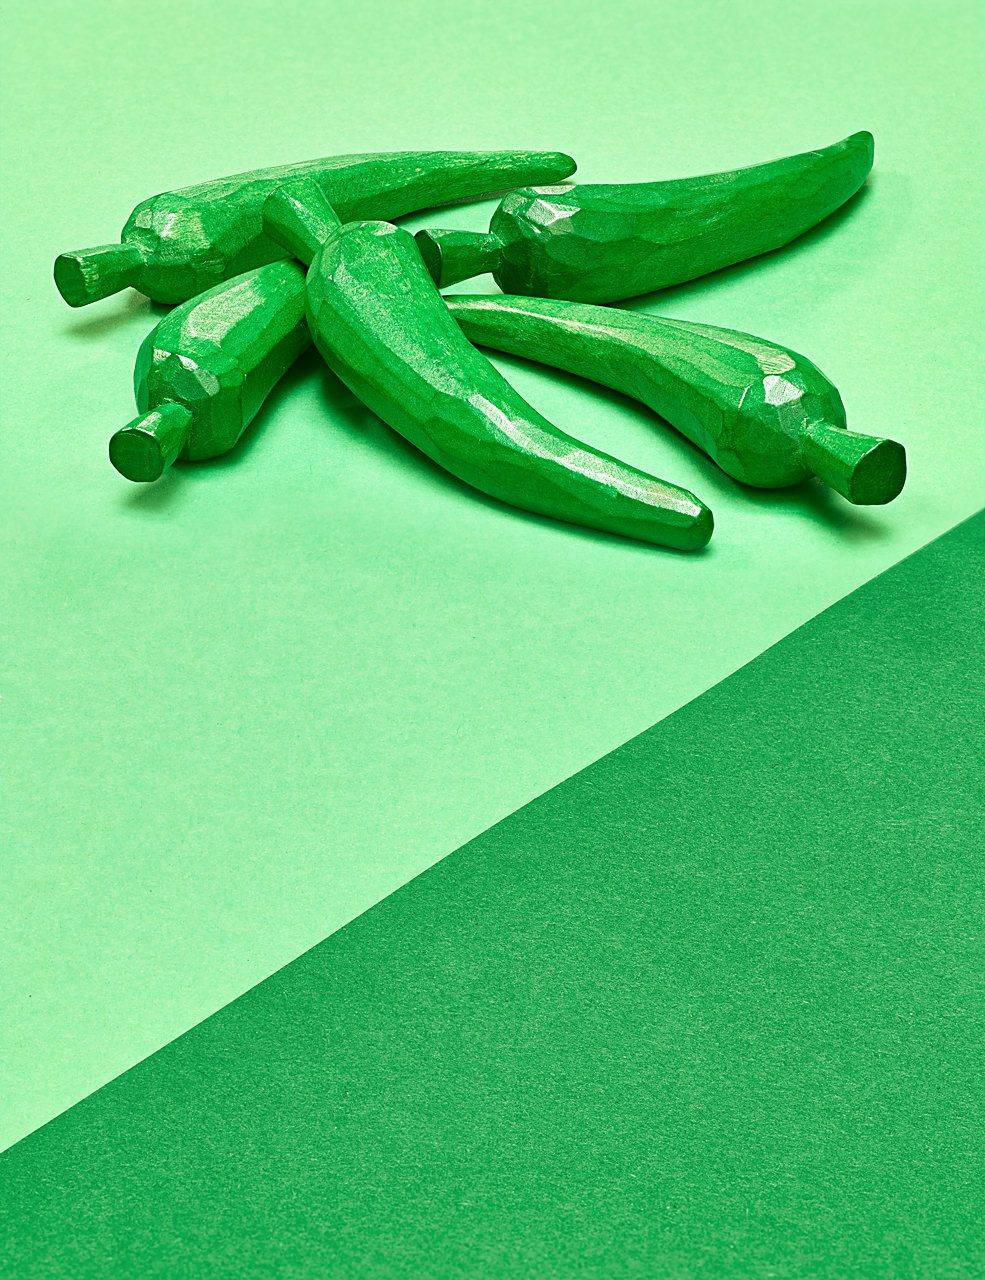 sabine-scheer-still-life-chillies